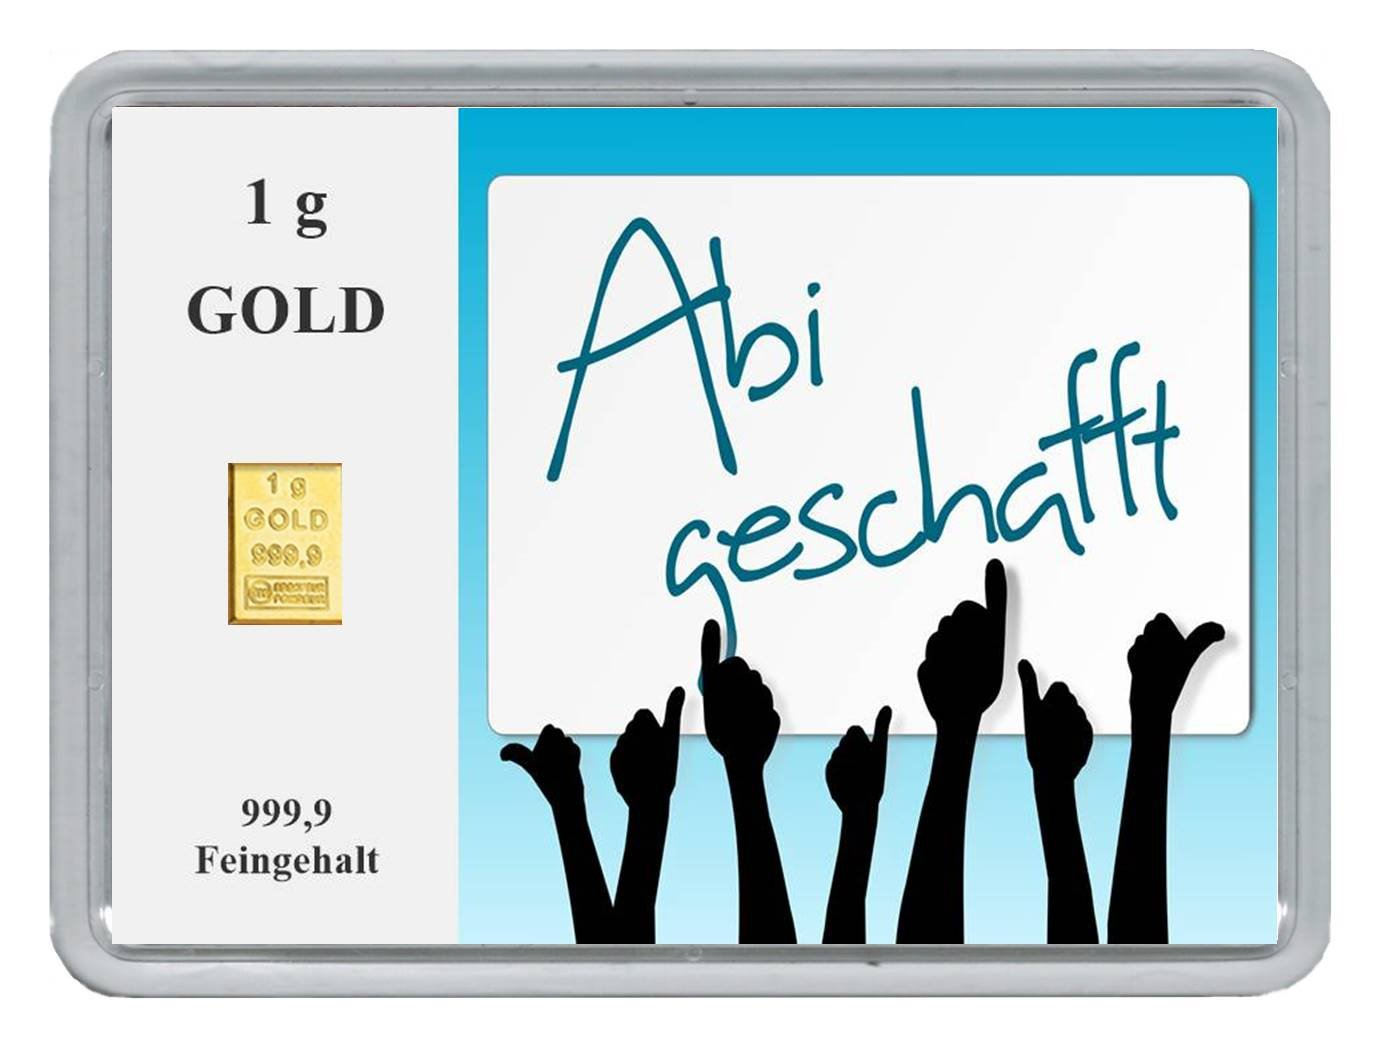 "New Edition 1g Goldbarren 999,9 Feingold in Motivbox""Abitur ."" in edler Goldverpackung 7"